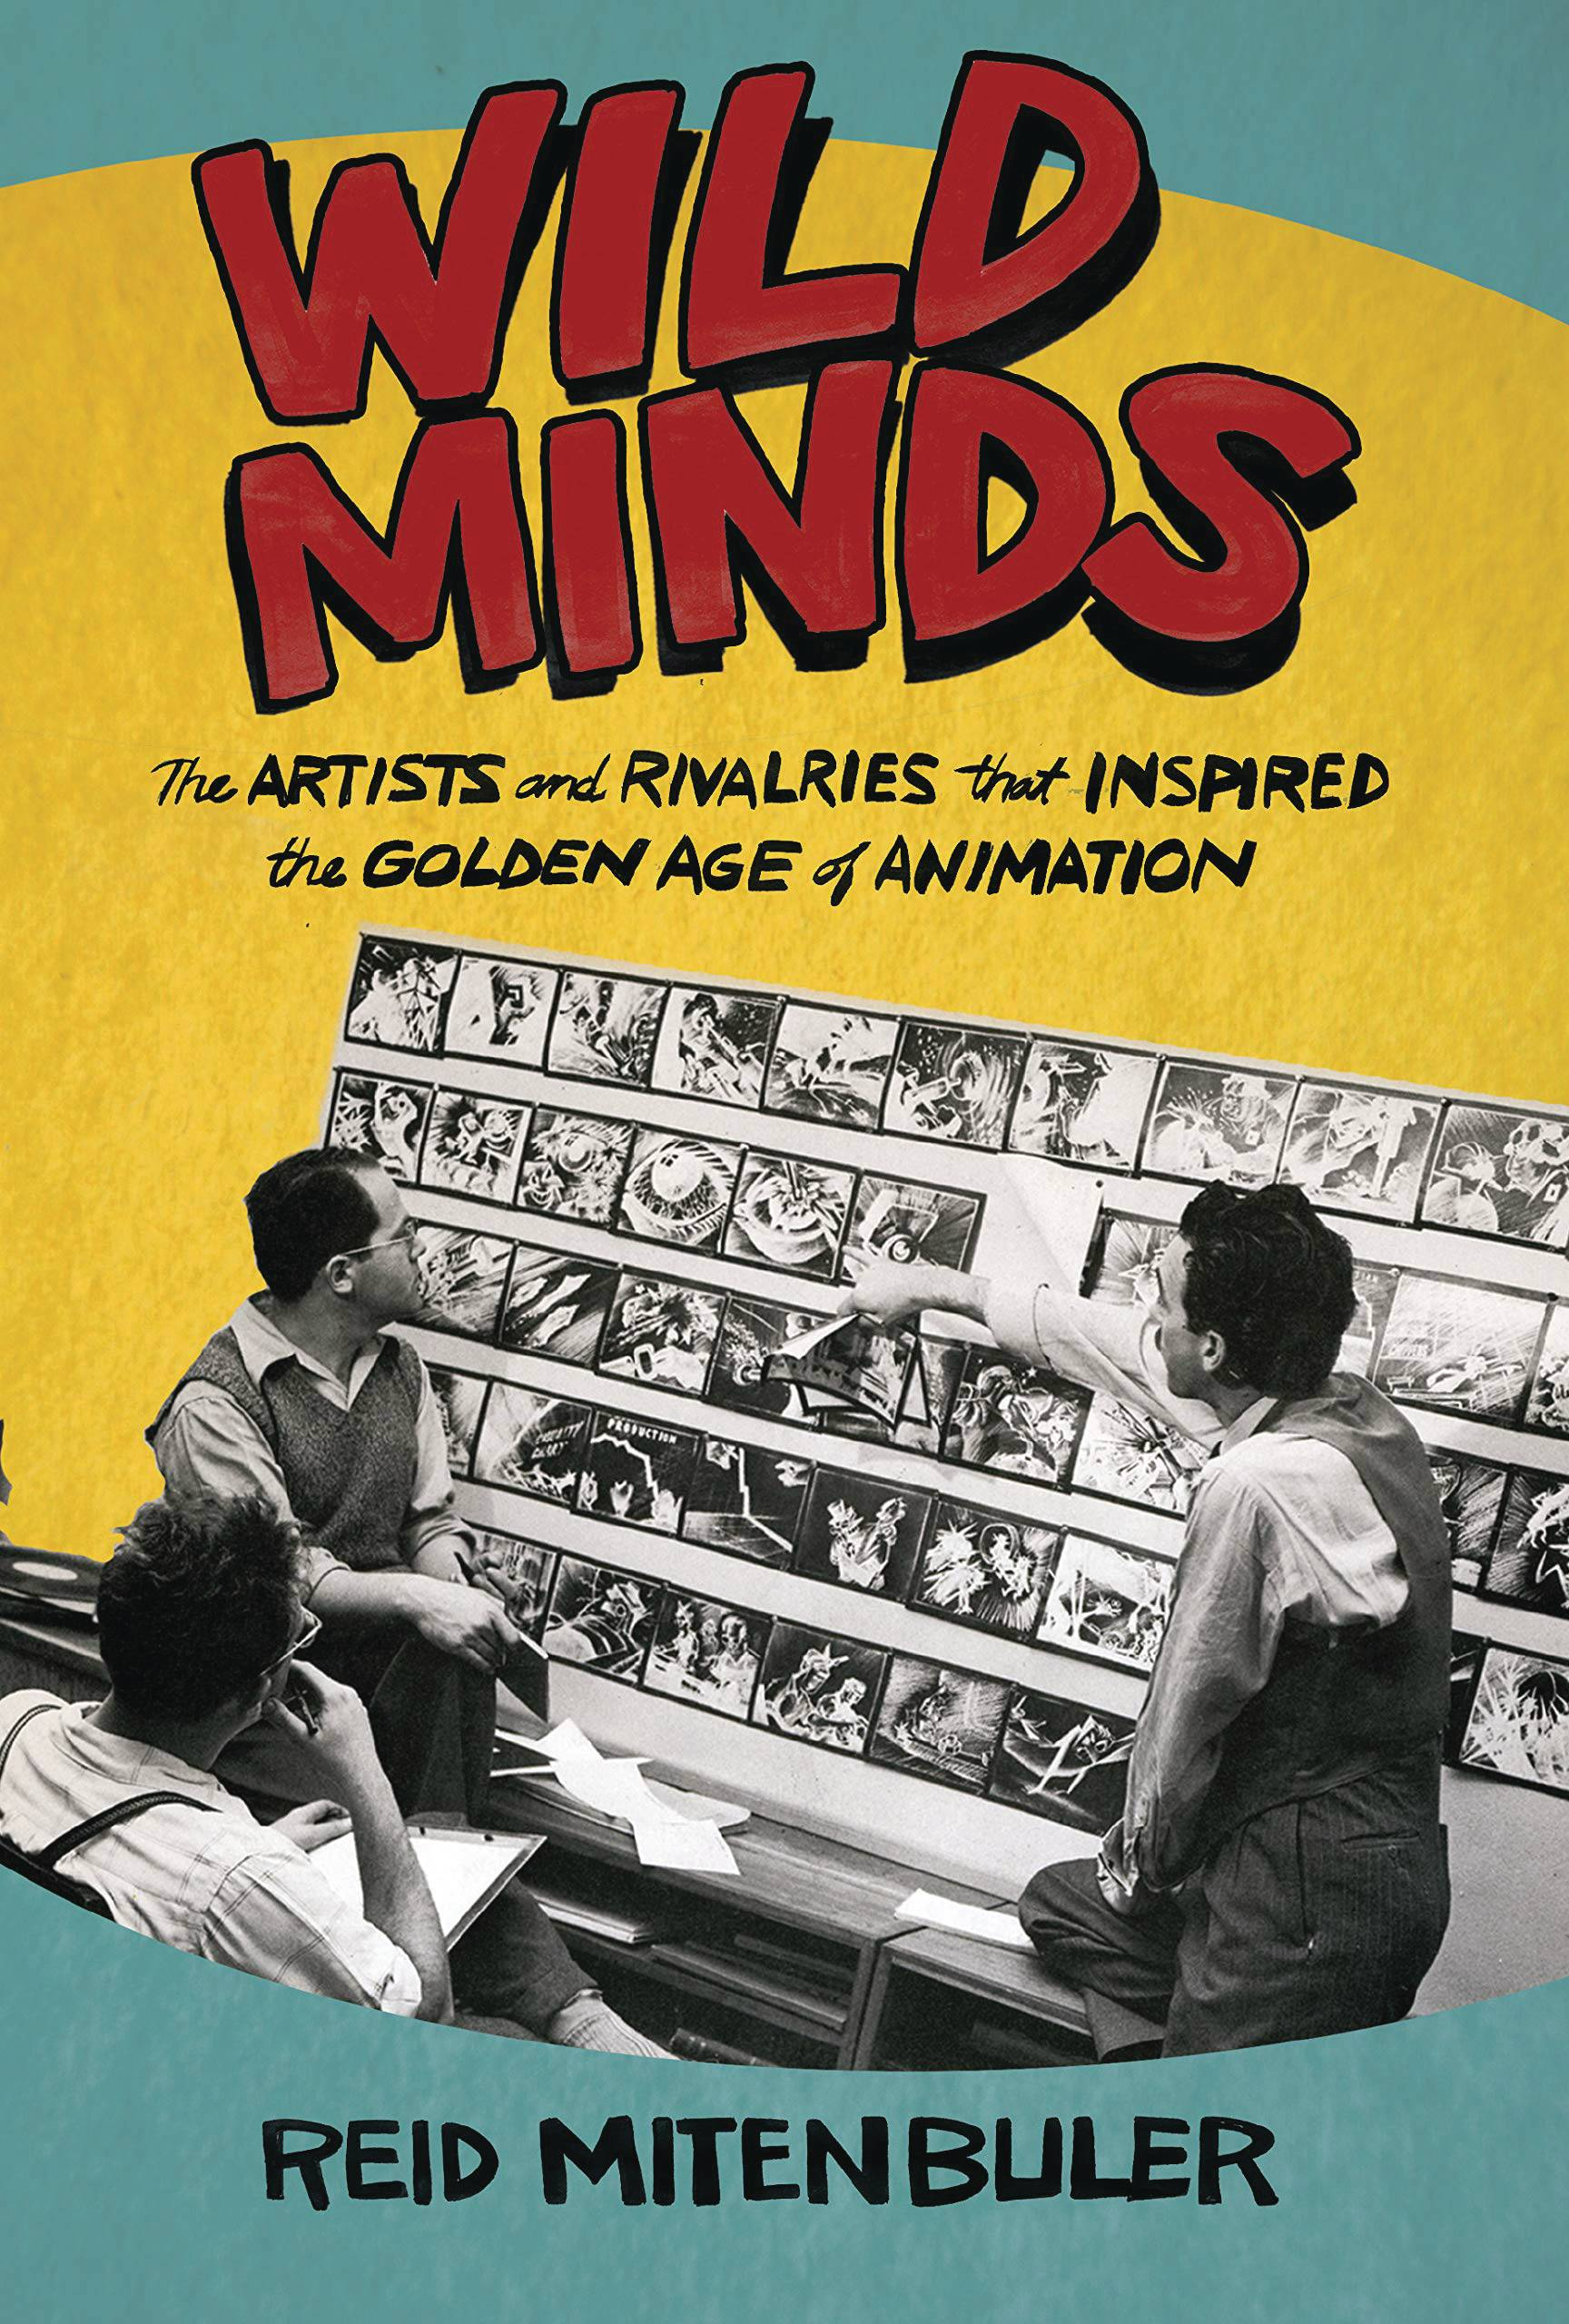 WILD MINDS ARTISTS & RIVALRIES INSPIRED GOLDEN AGE ANIMATION